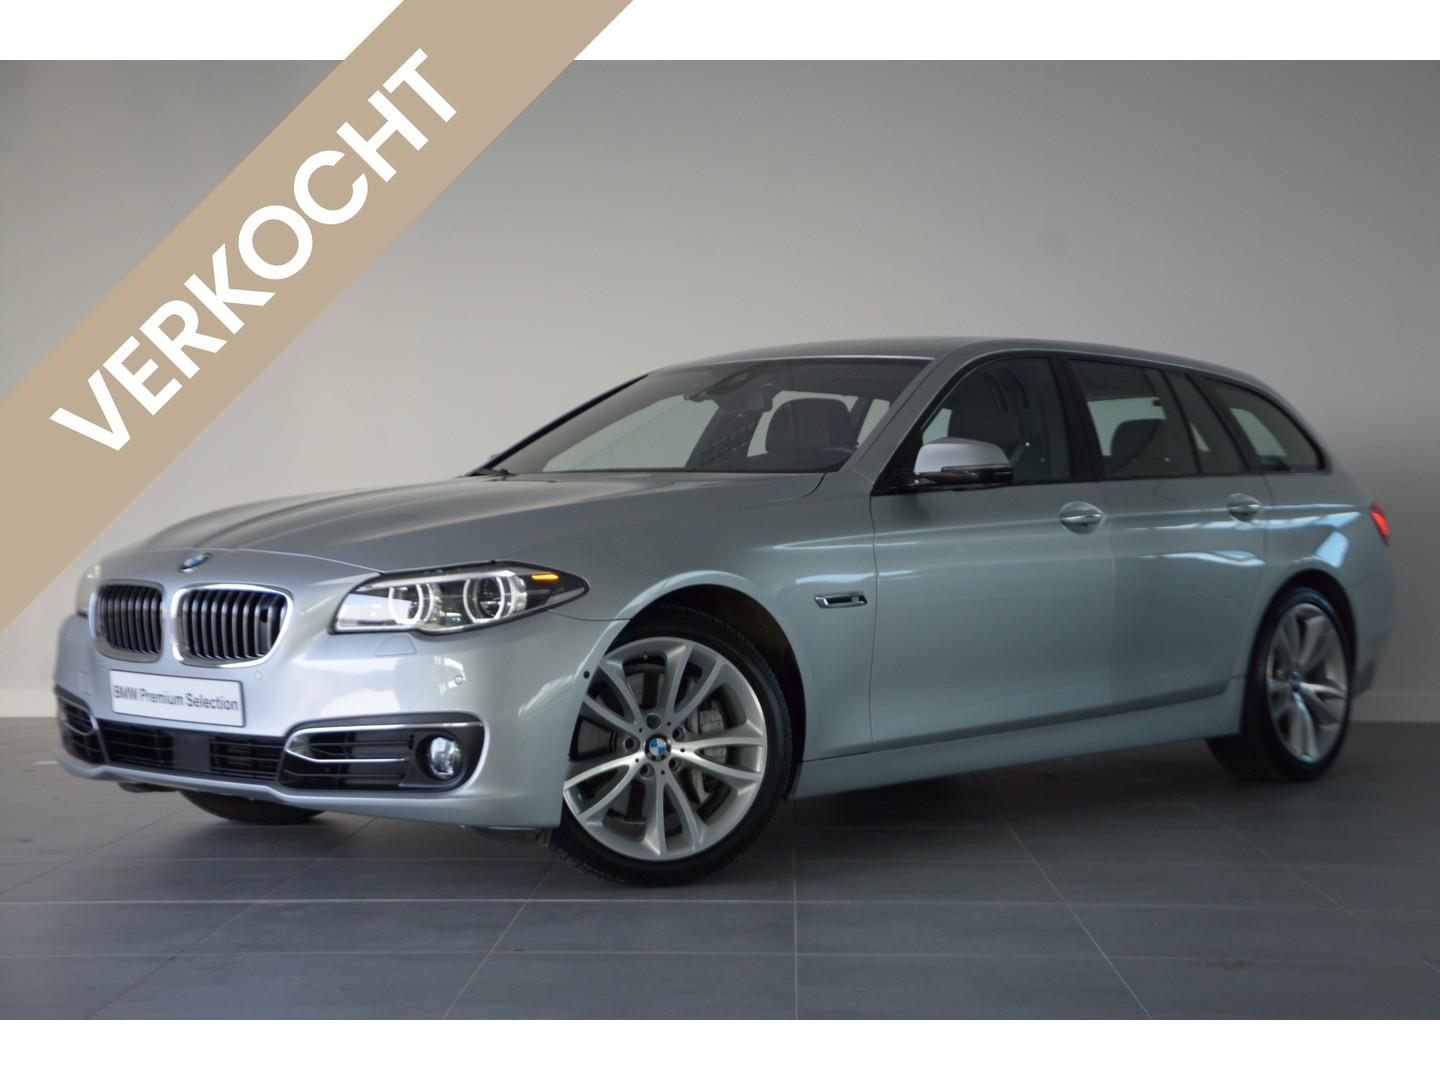 Bmw 5 serie Touring 535d luxury edition aut.